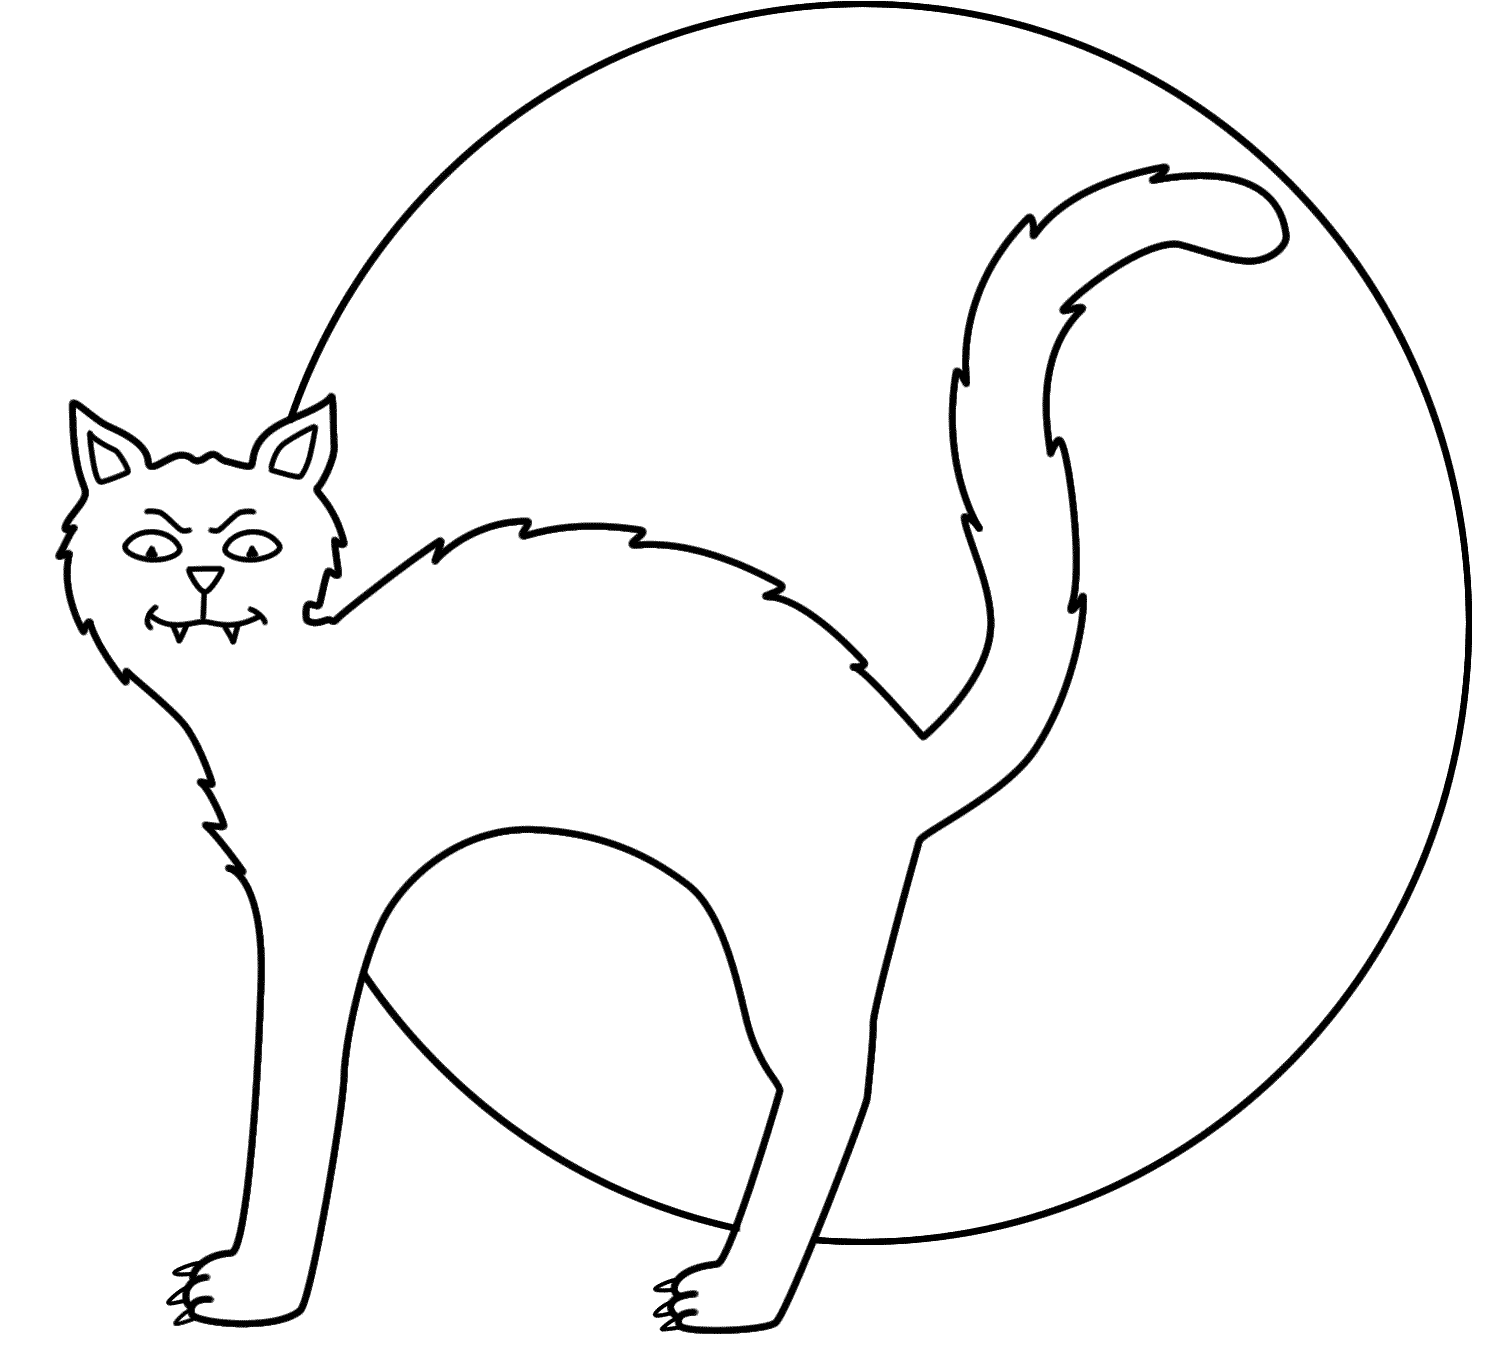 scary black cat coloring pages | Black Cats Drawing at GetDrawings.com | Free for personal ...